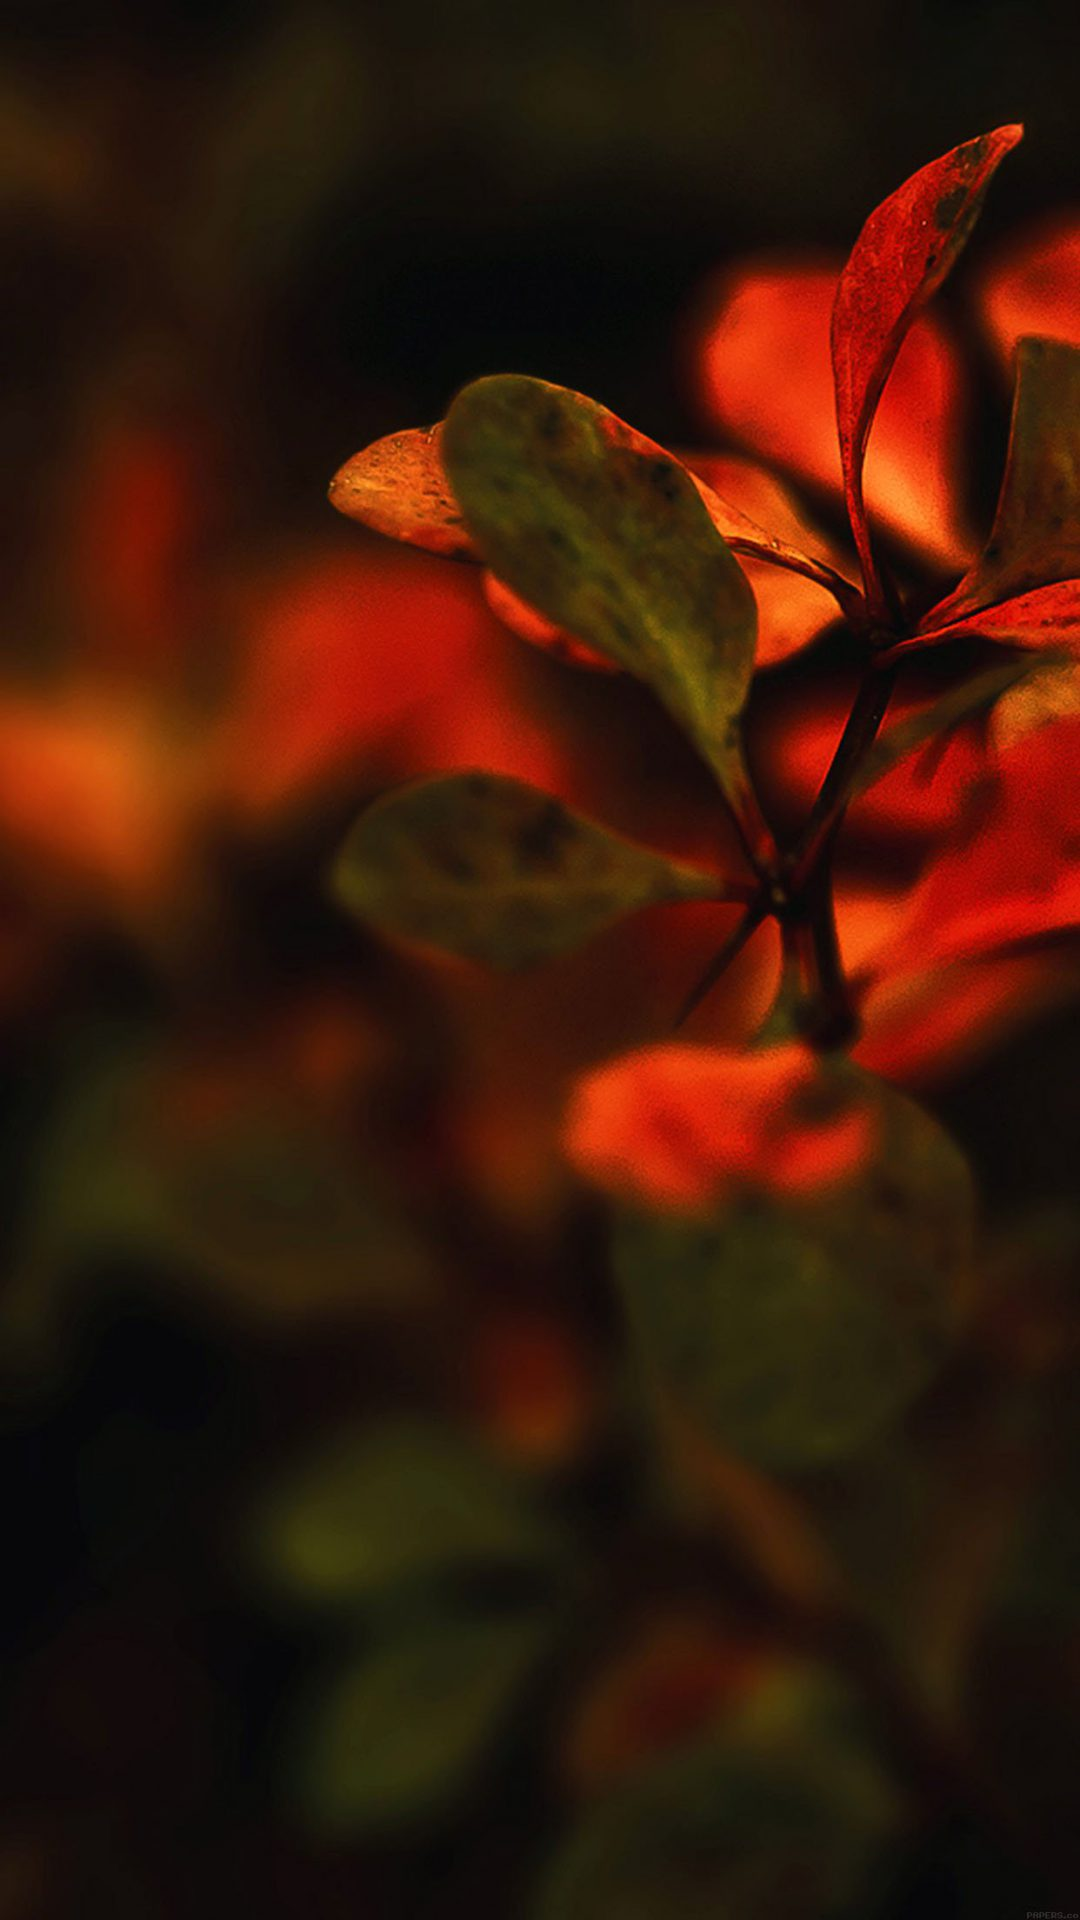 Wallpaper Red Flowers Nature